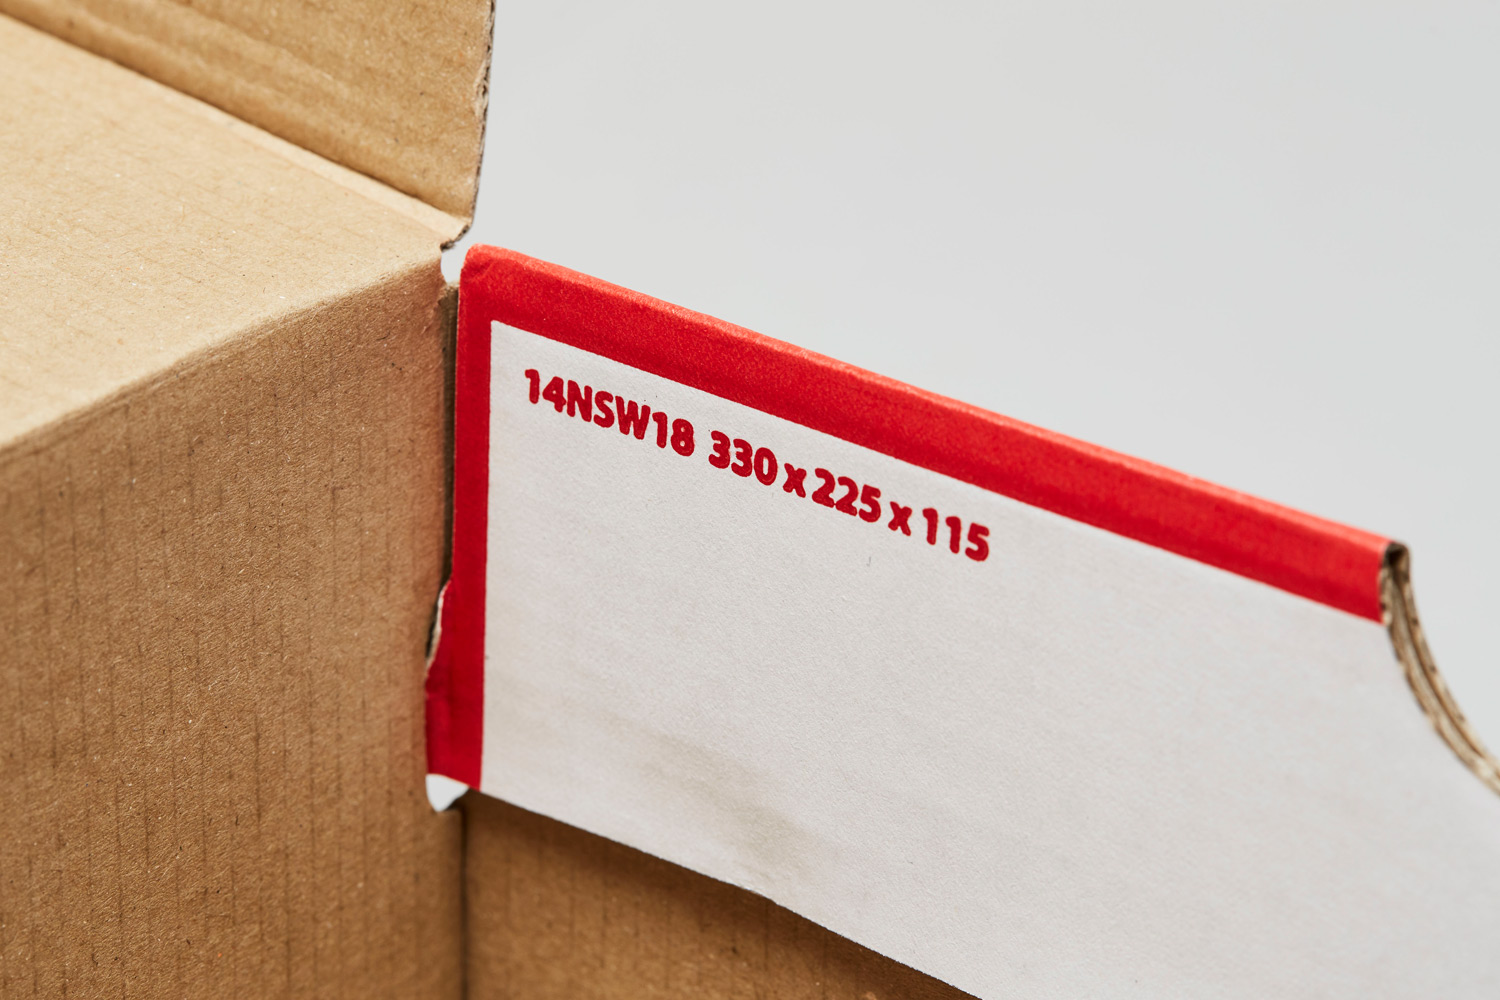 These measurements can be found in different styles of hinged Nike boxes like the ones shown below.